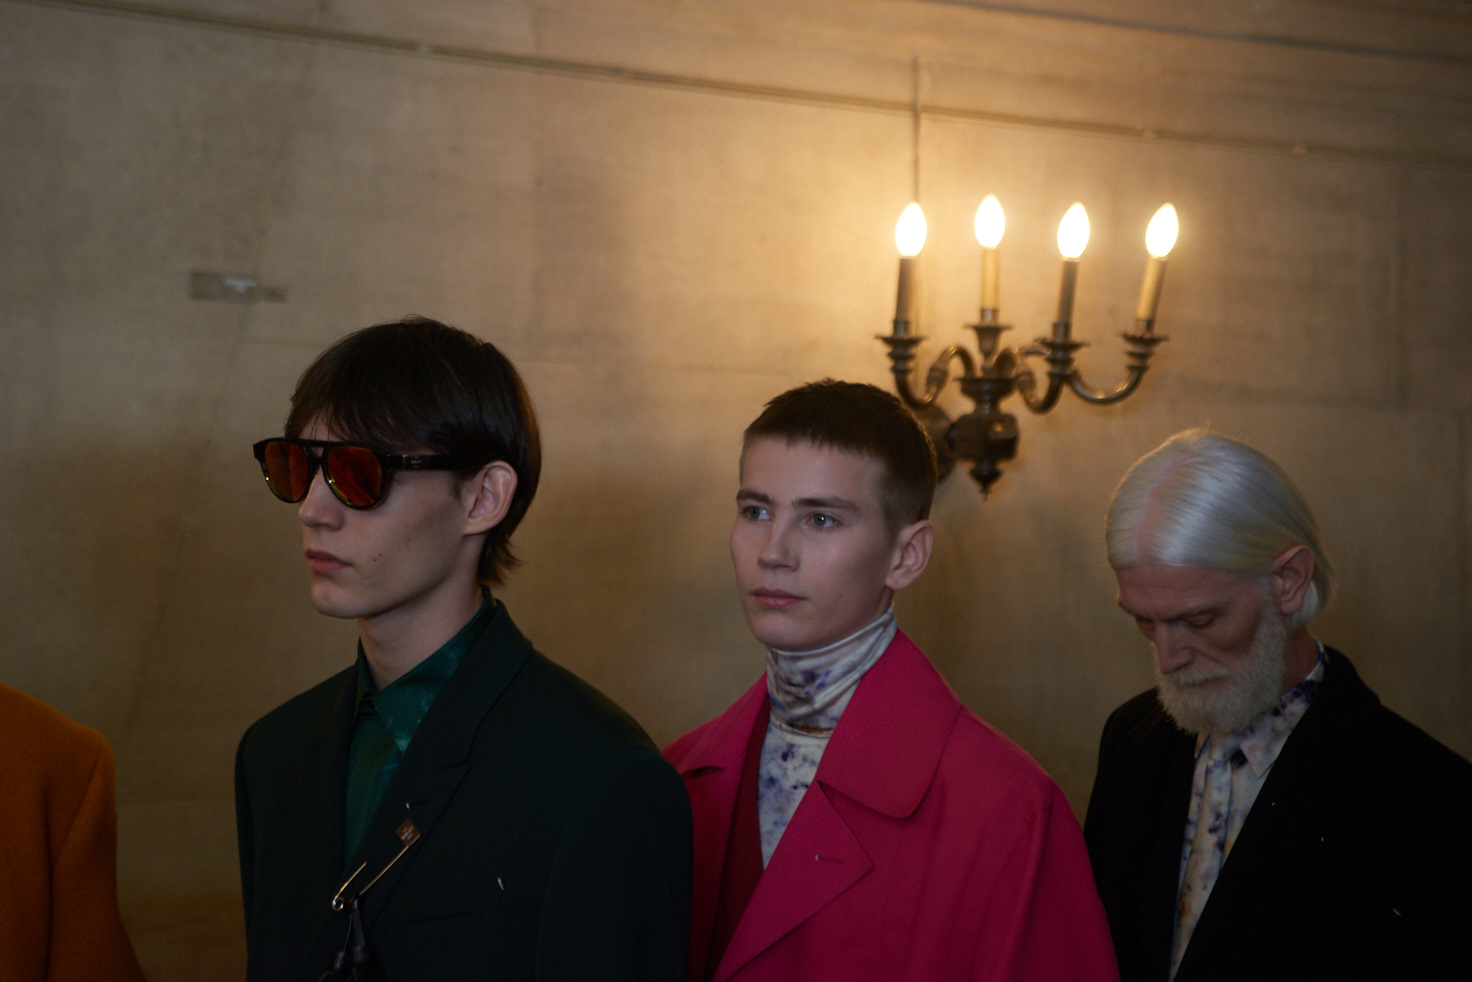 BERLUTI_FW19_Backstage_BTBonline_Behind_The_Blinds_Magazine_Hugo denis-queinec_AES2180.jpg